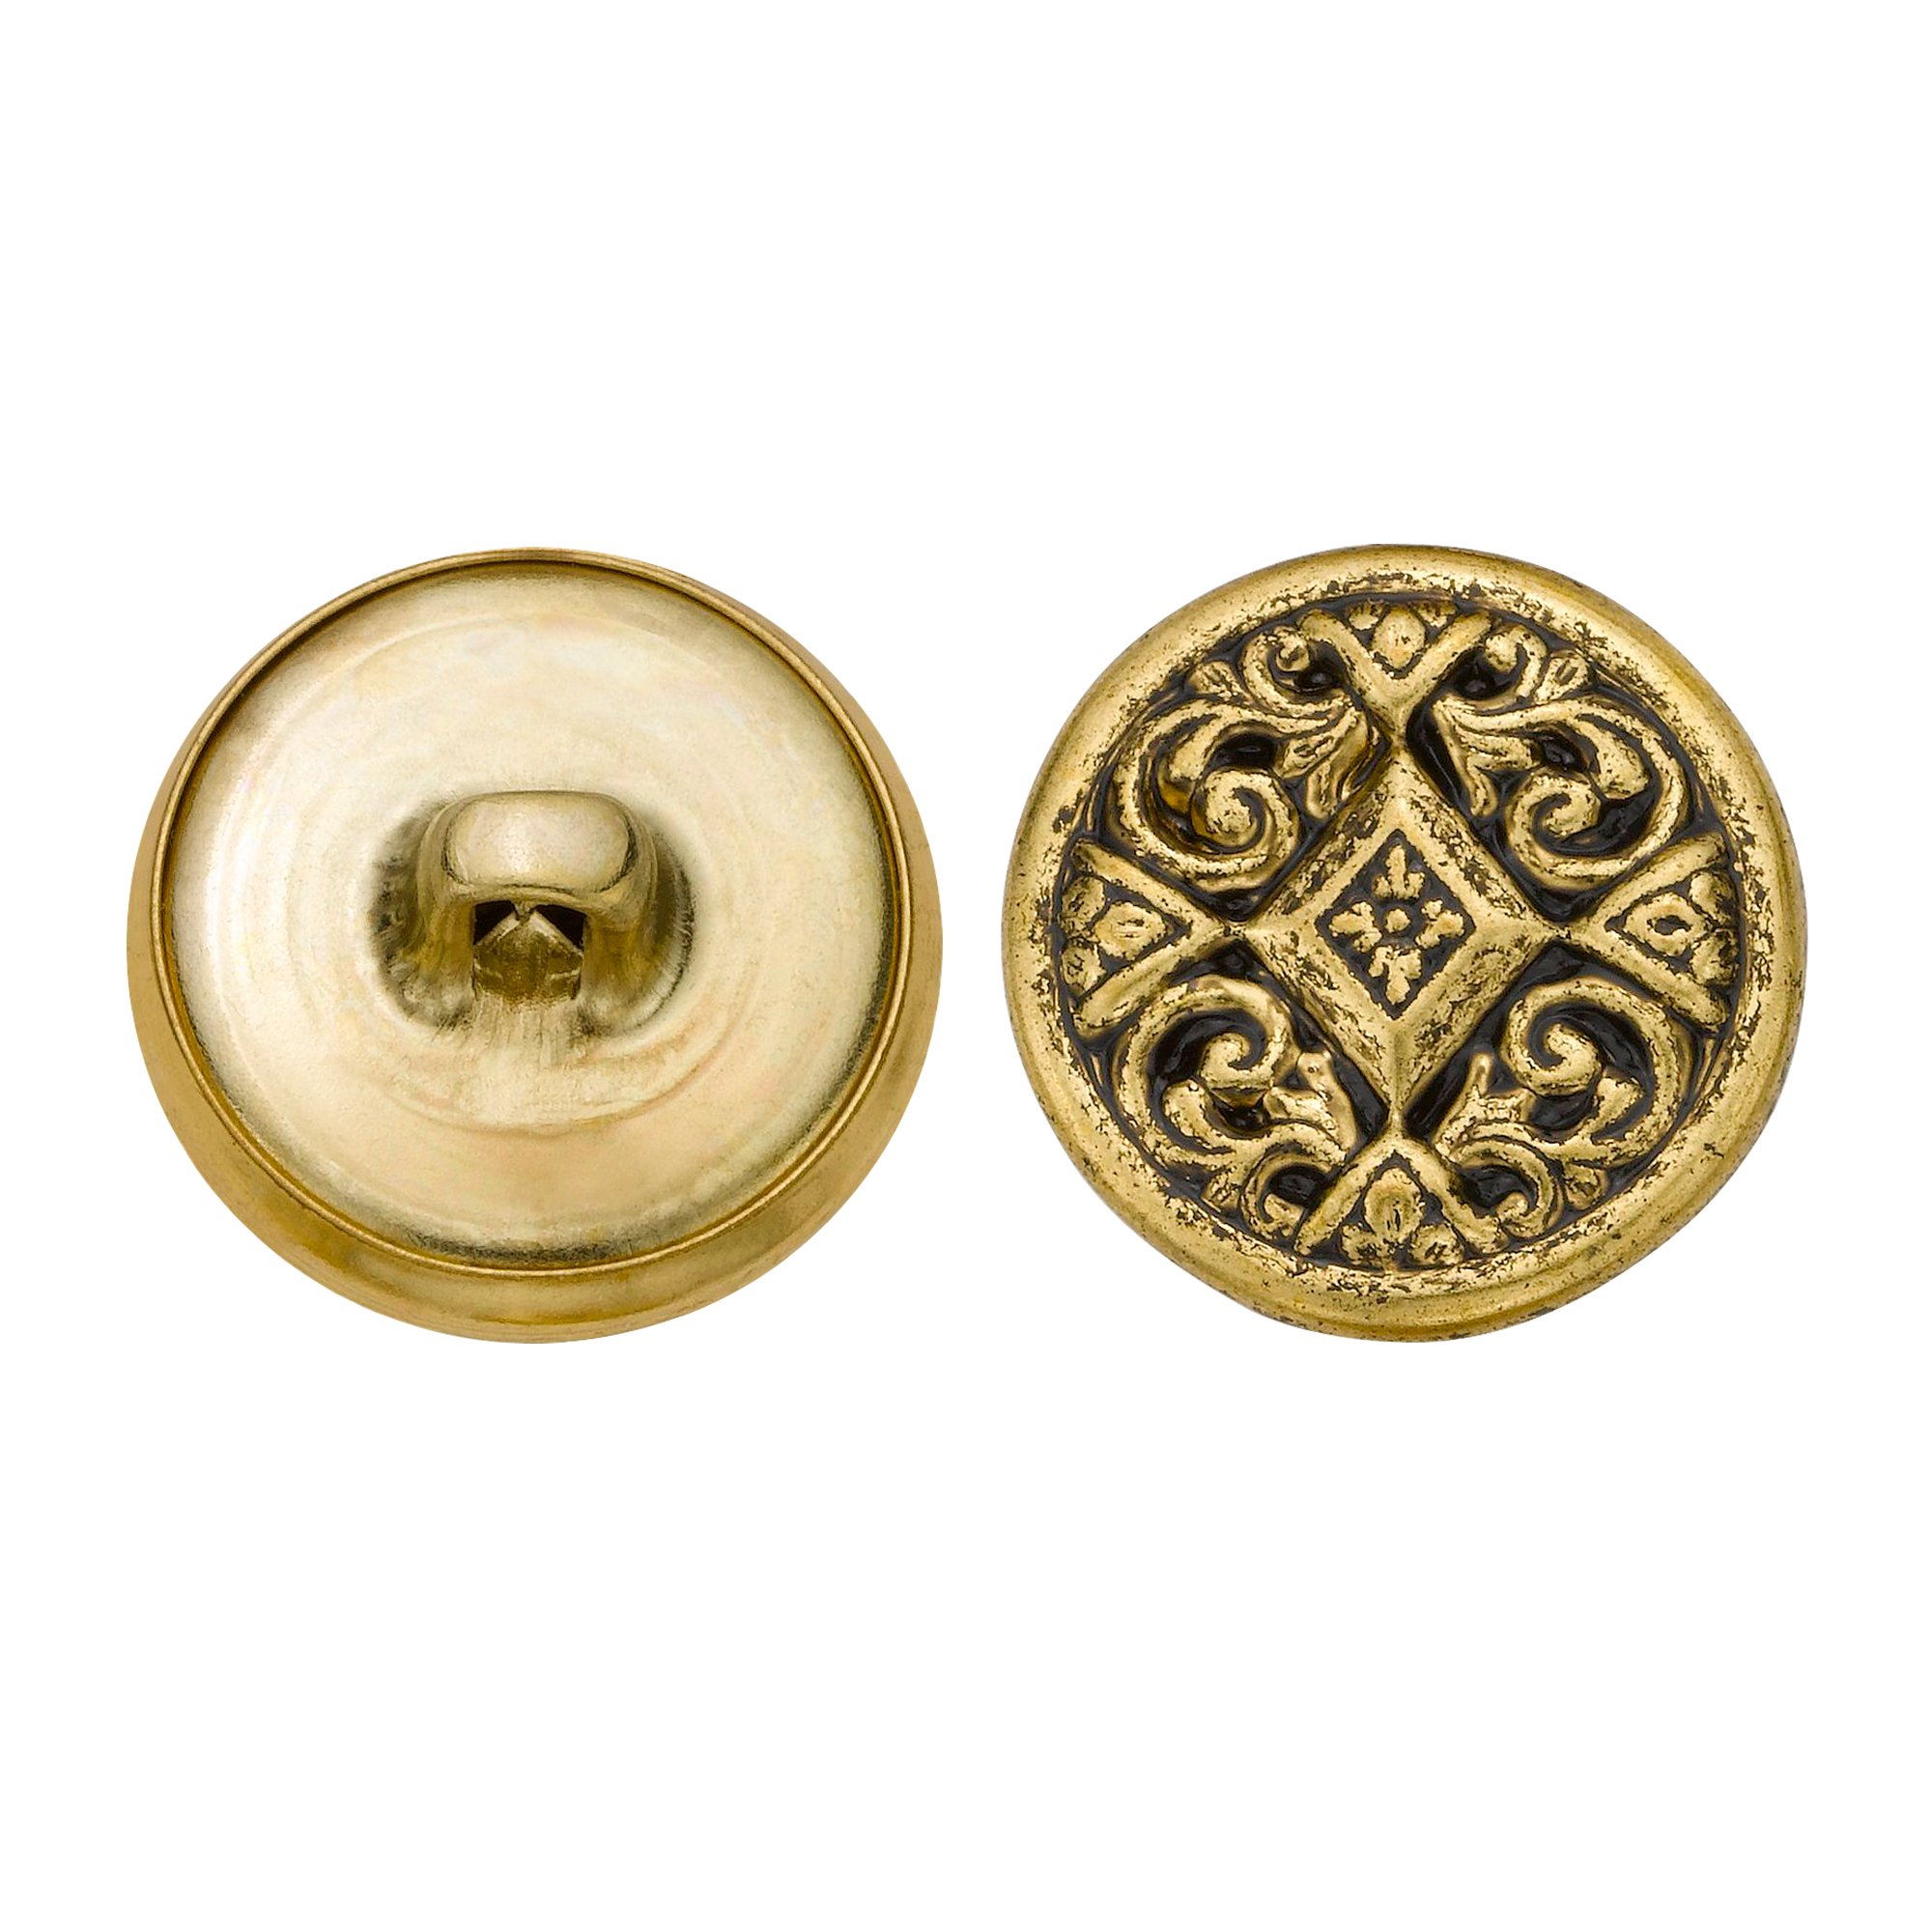 C&C Metal Products 5349 Filigree Metal Button, Size 30 Ligne, Antique Gold, 36-Pack